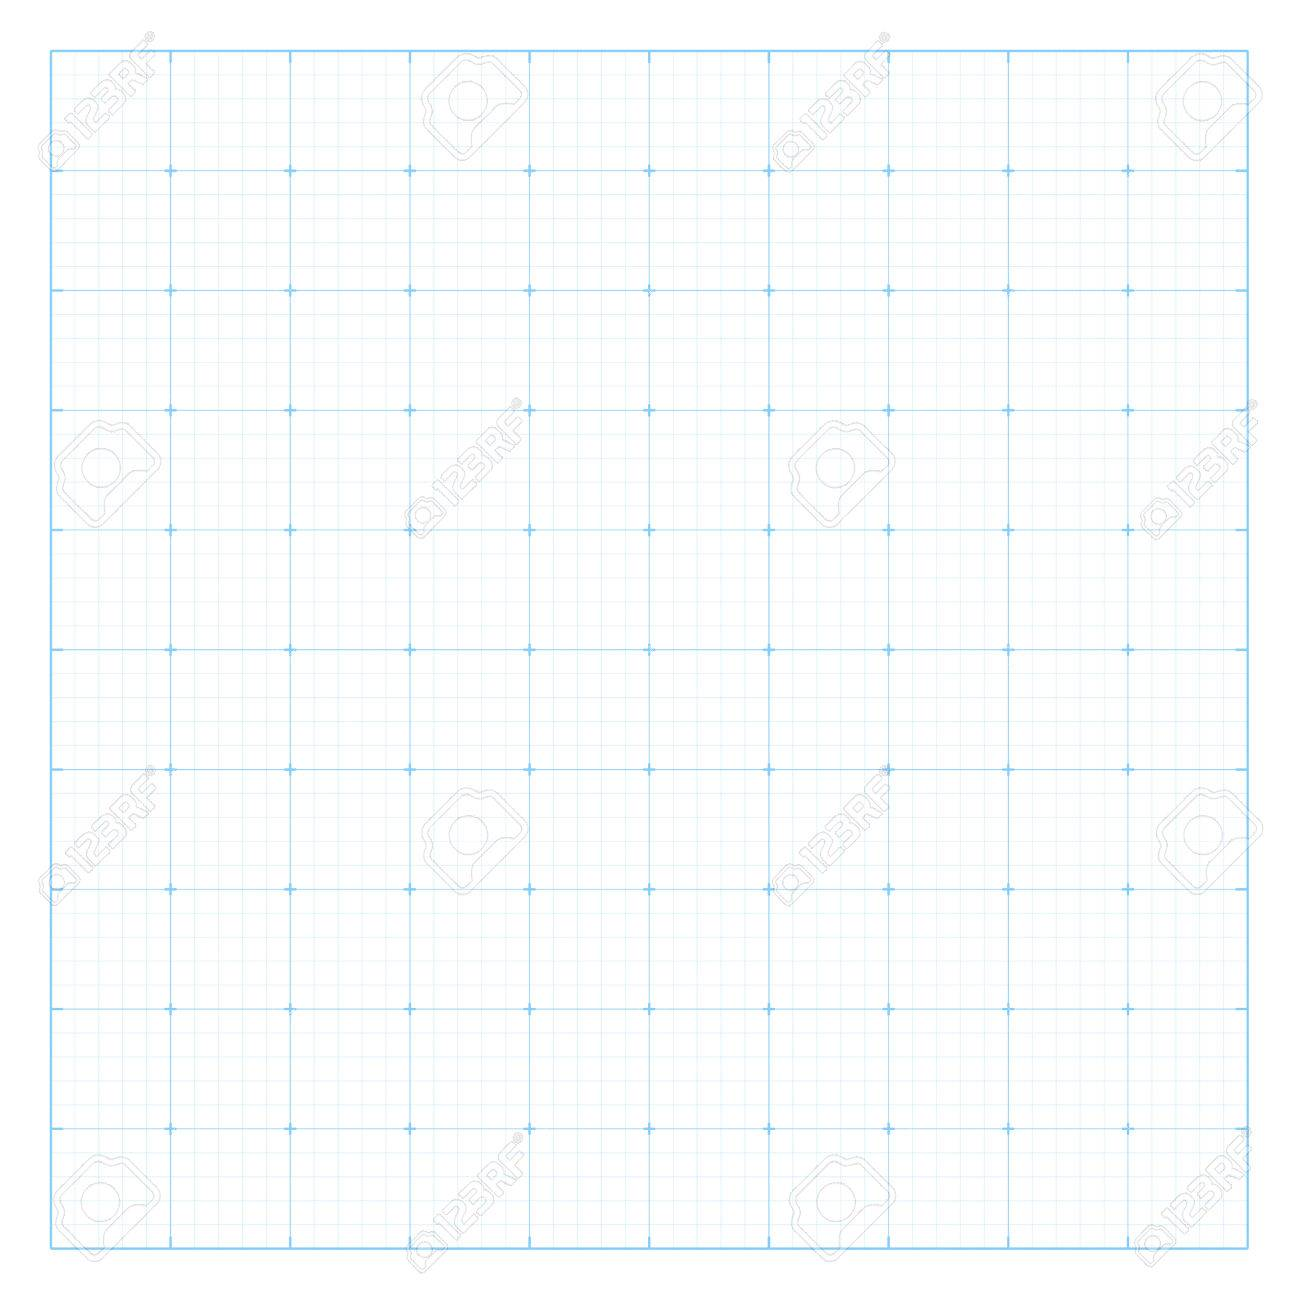 Paper blueprint background drawing paper for architectural paper blueprint background drawing paper for architectural engineering design work vector stock vector malvernweather Gallery